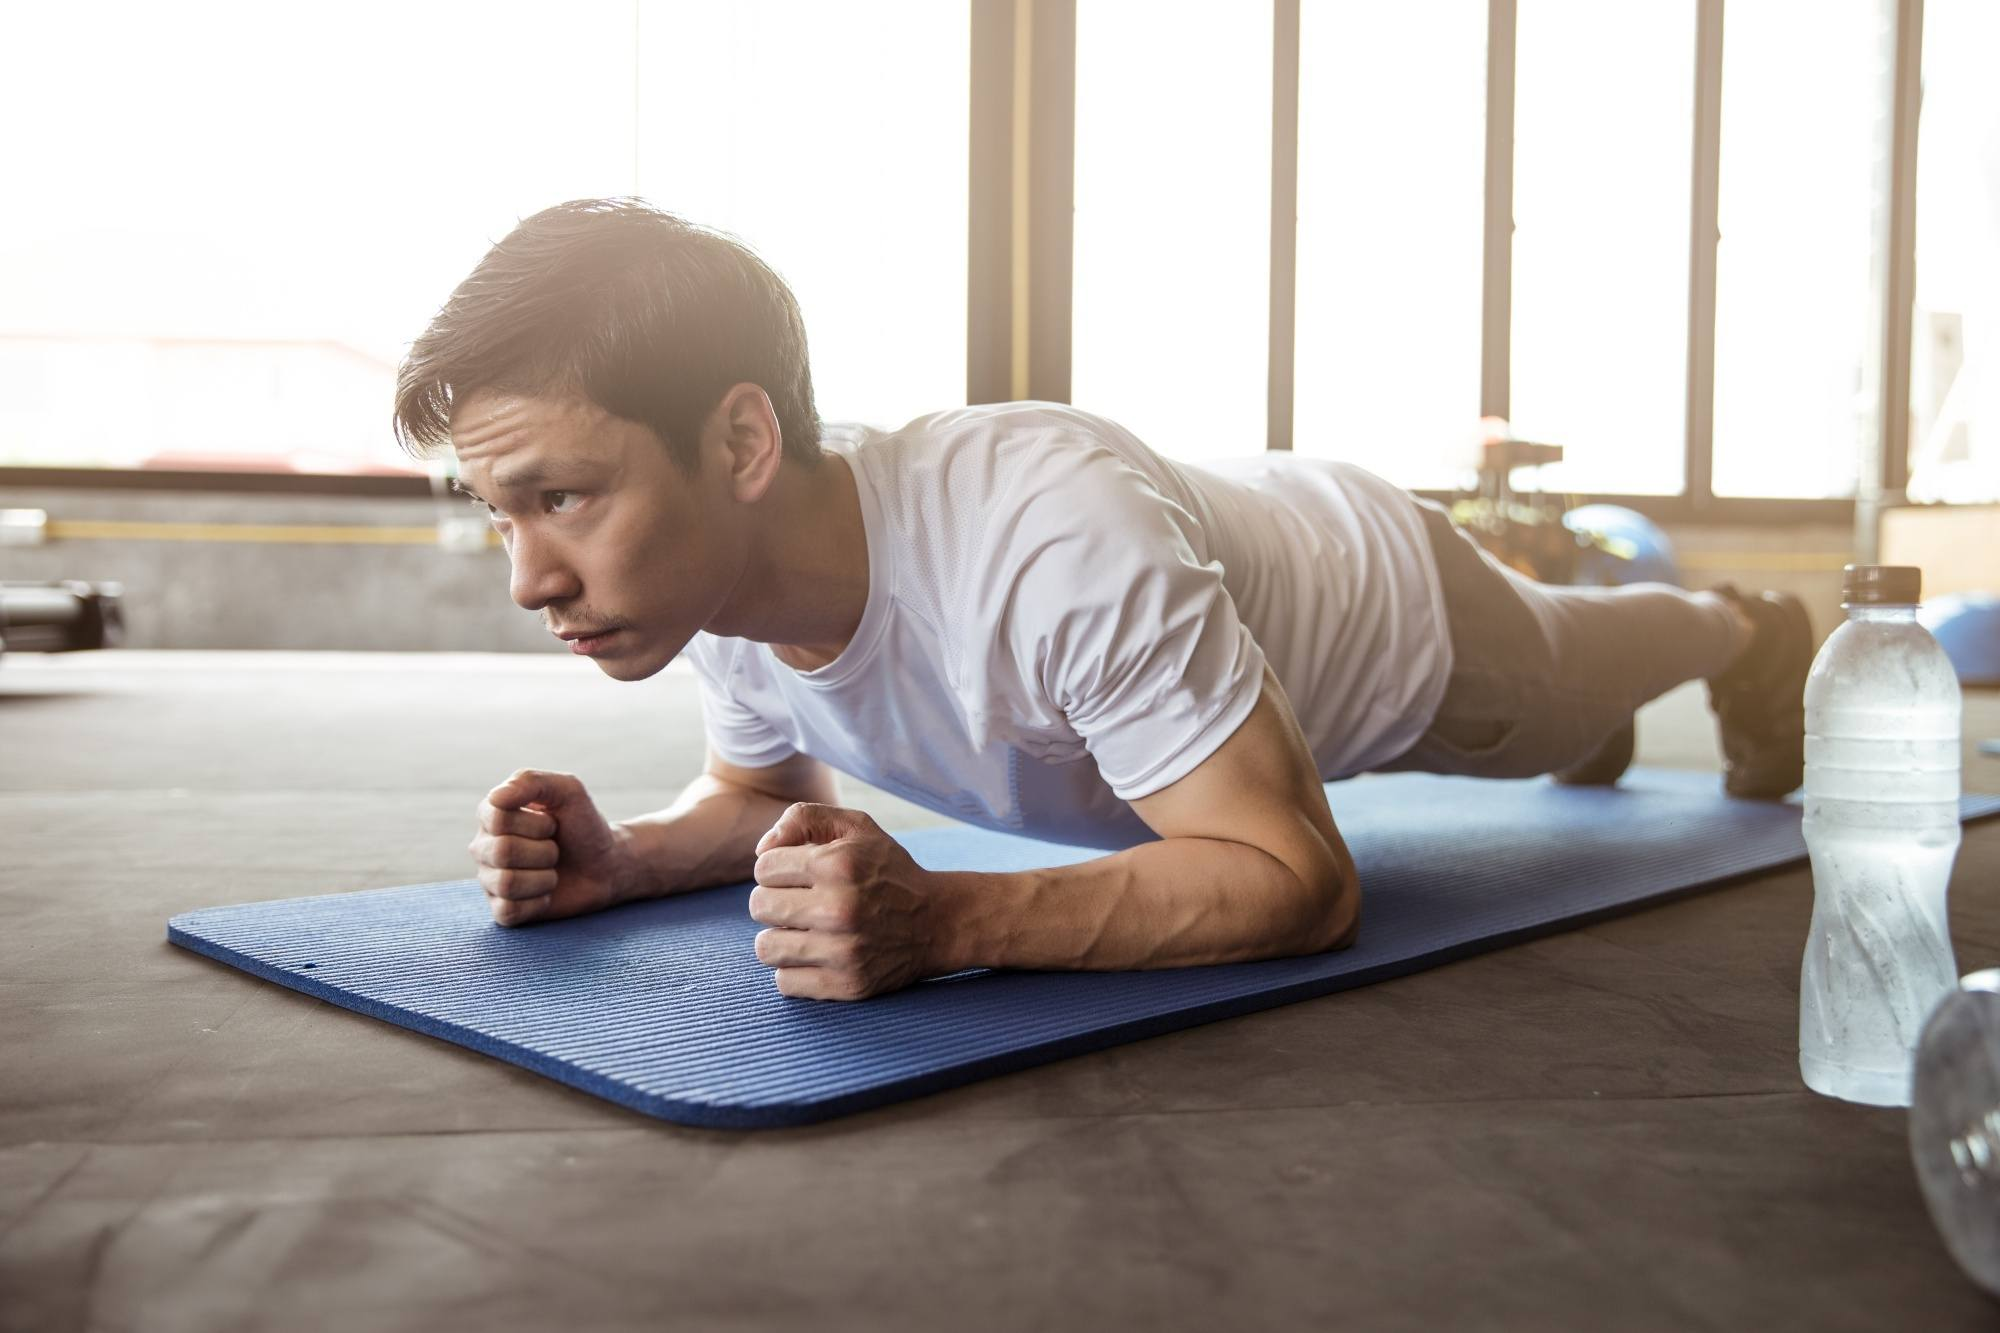 Hair care tips for men: Man doing planks on a mat on the floor